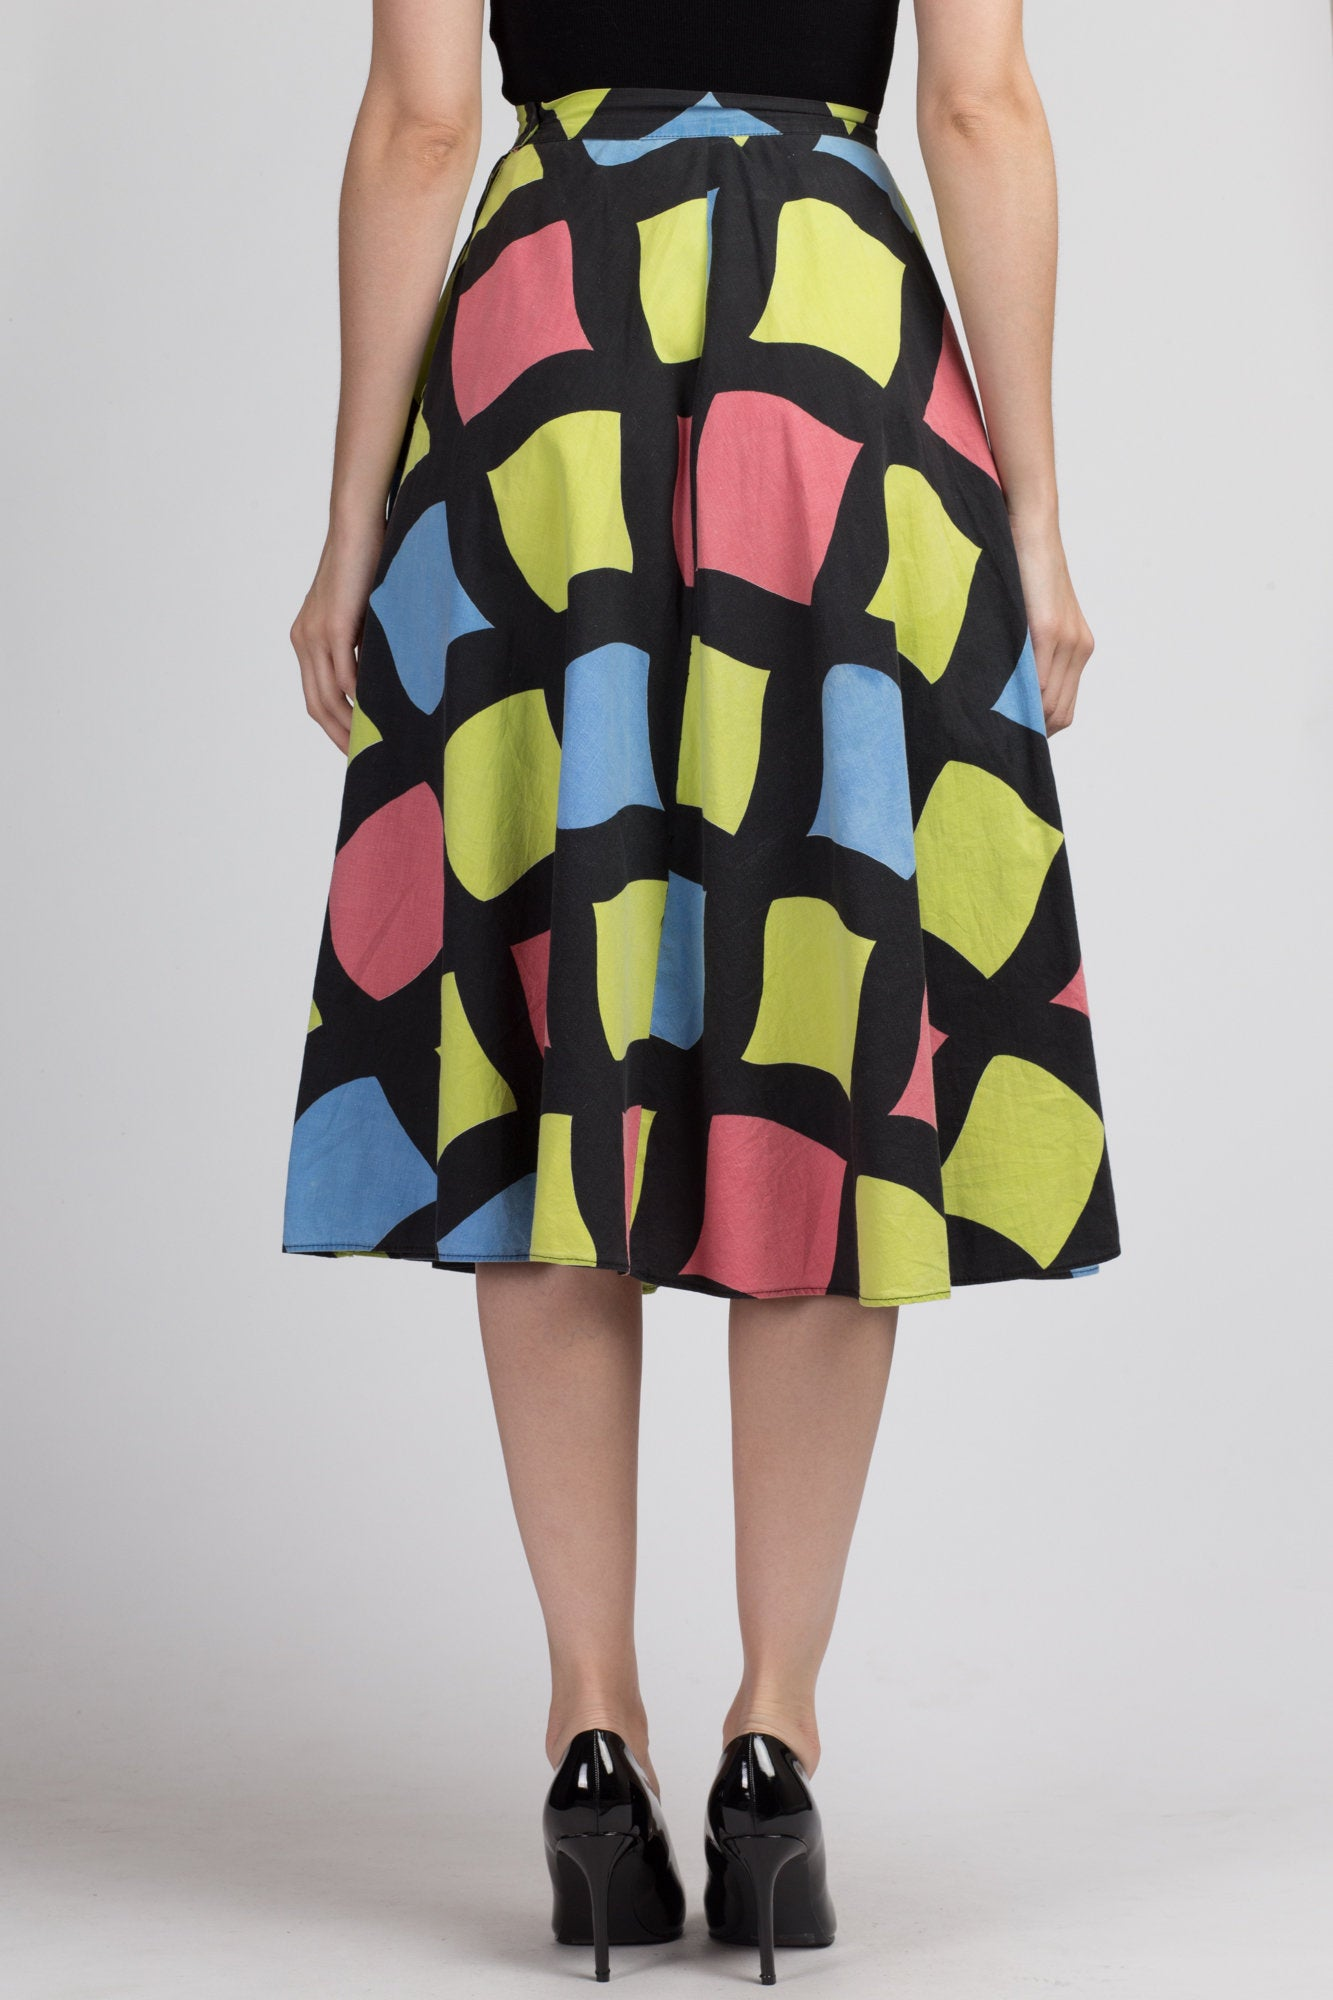 Vintage 50s Colorful Circle Skirt - Extra Small